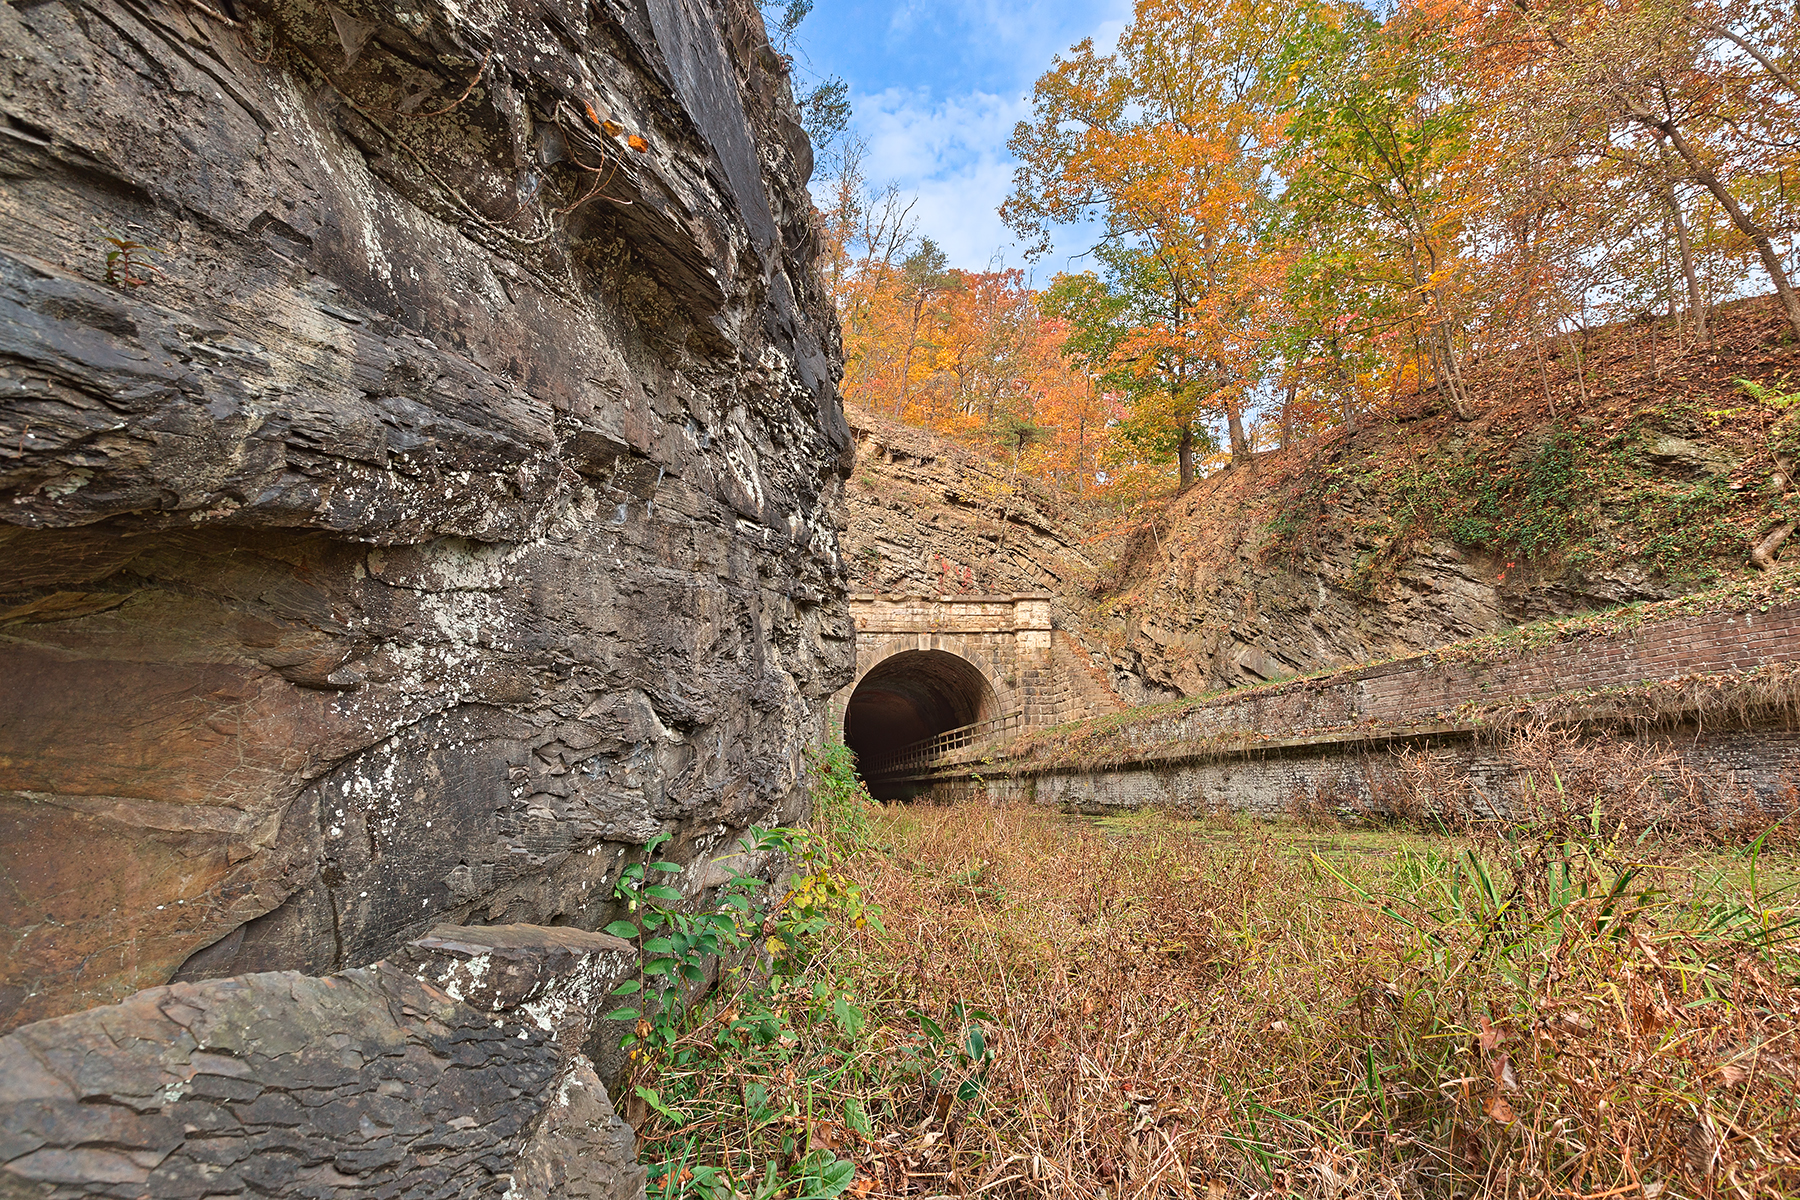 Paw paw fall tunnel - hdr photo